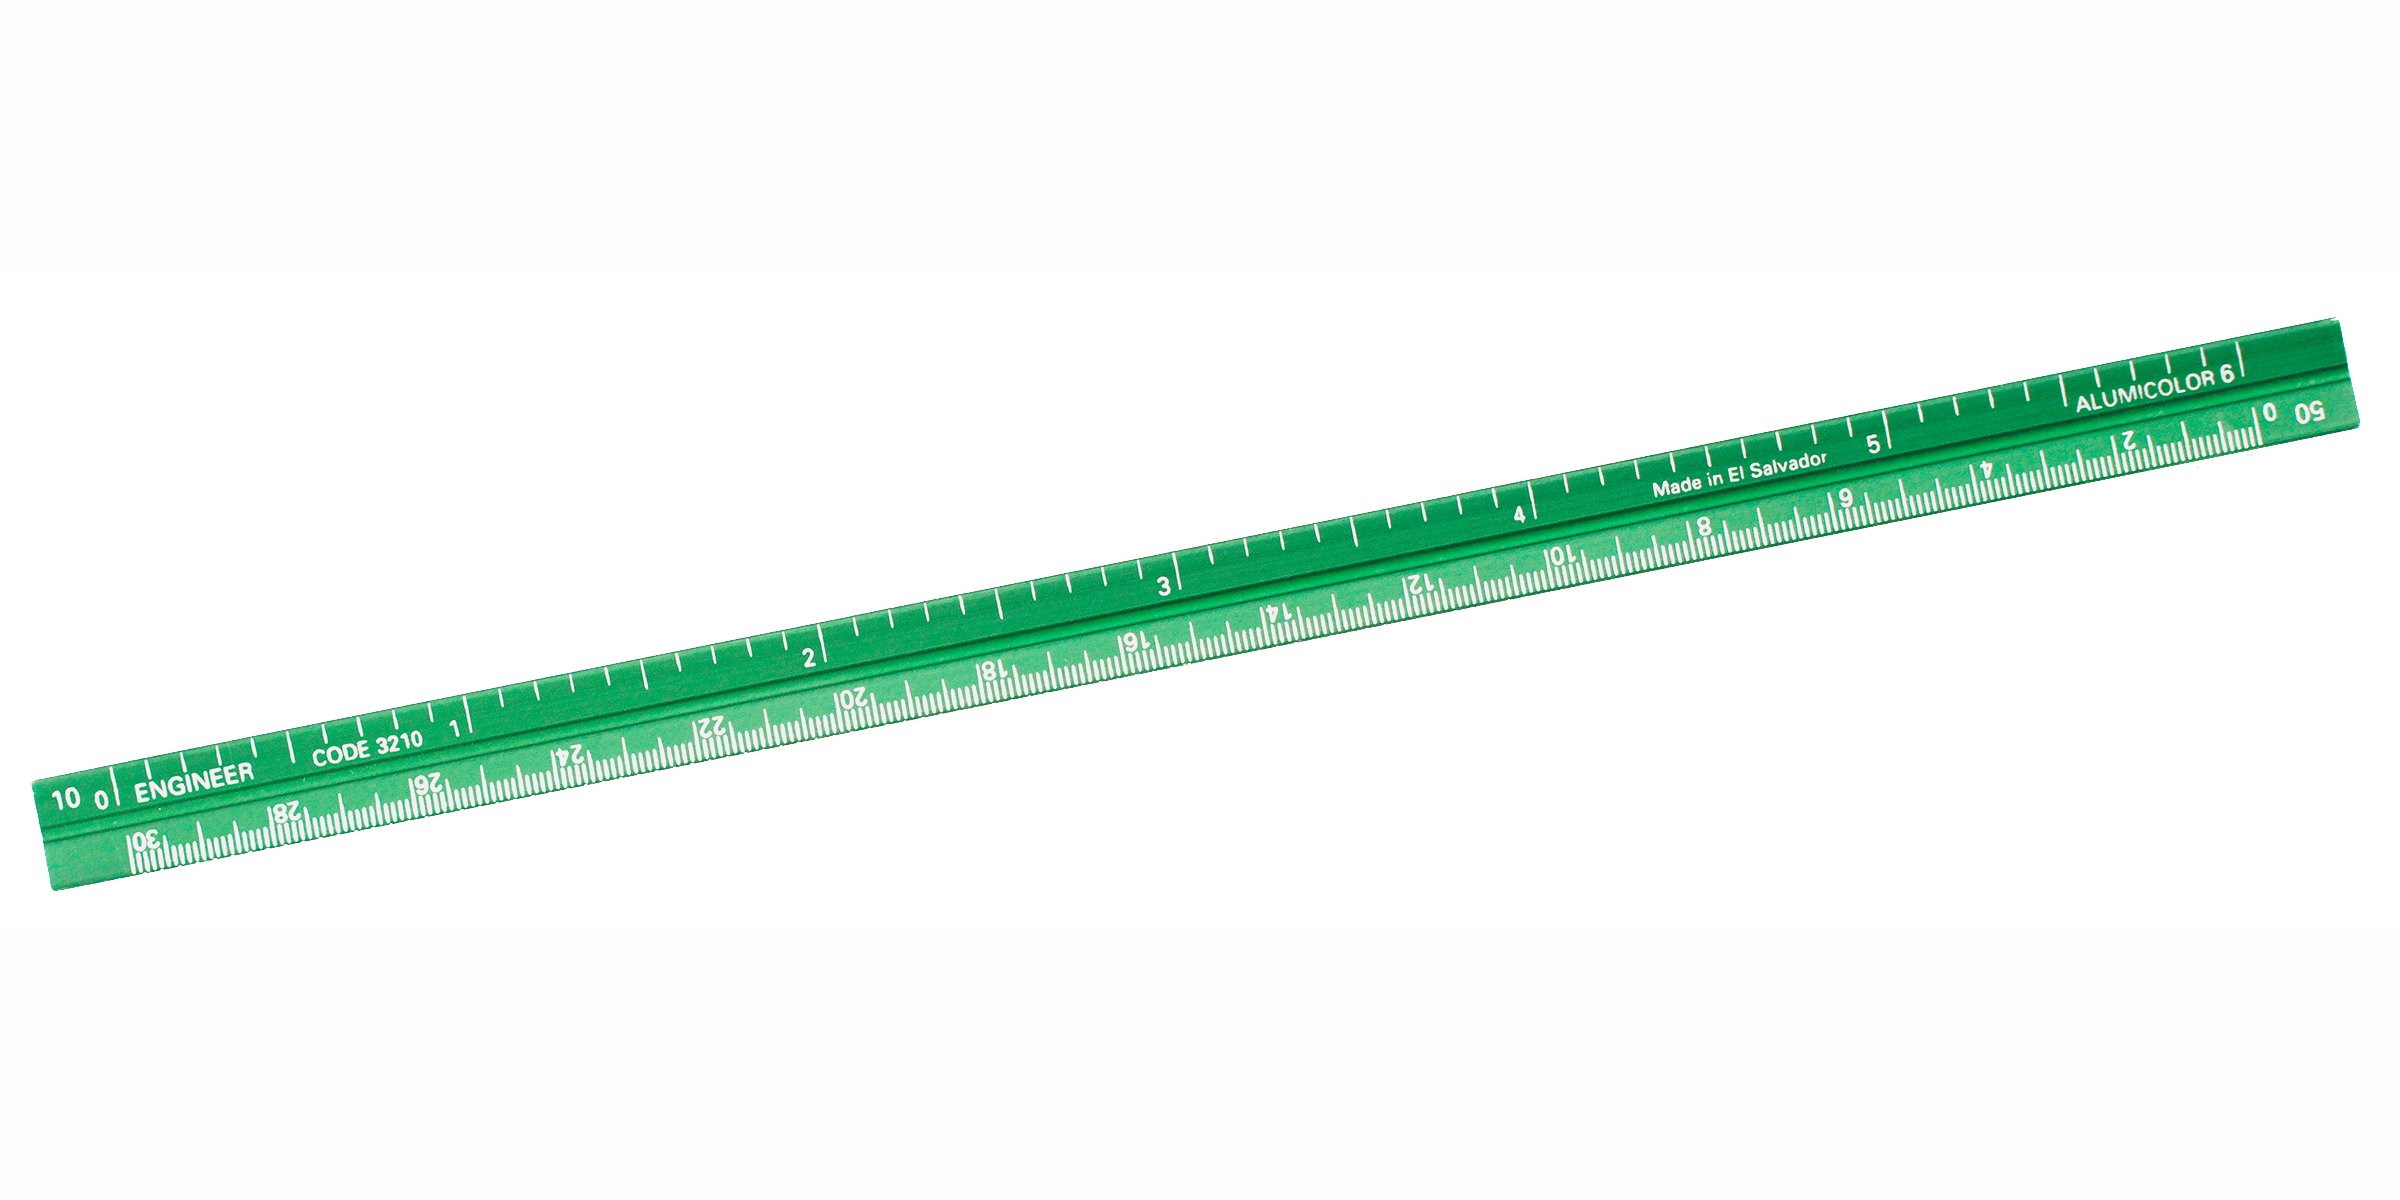 Alumicolor Pocket-Size Engineer Scale, Aluminum, 6 inches, Green (3210-6)